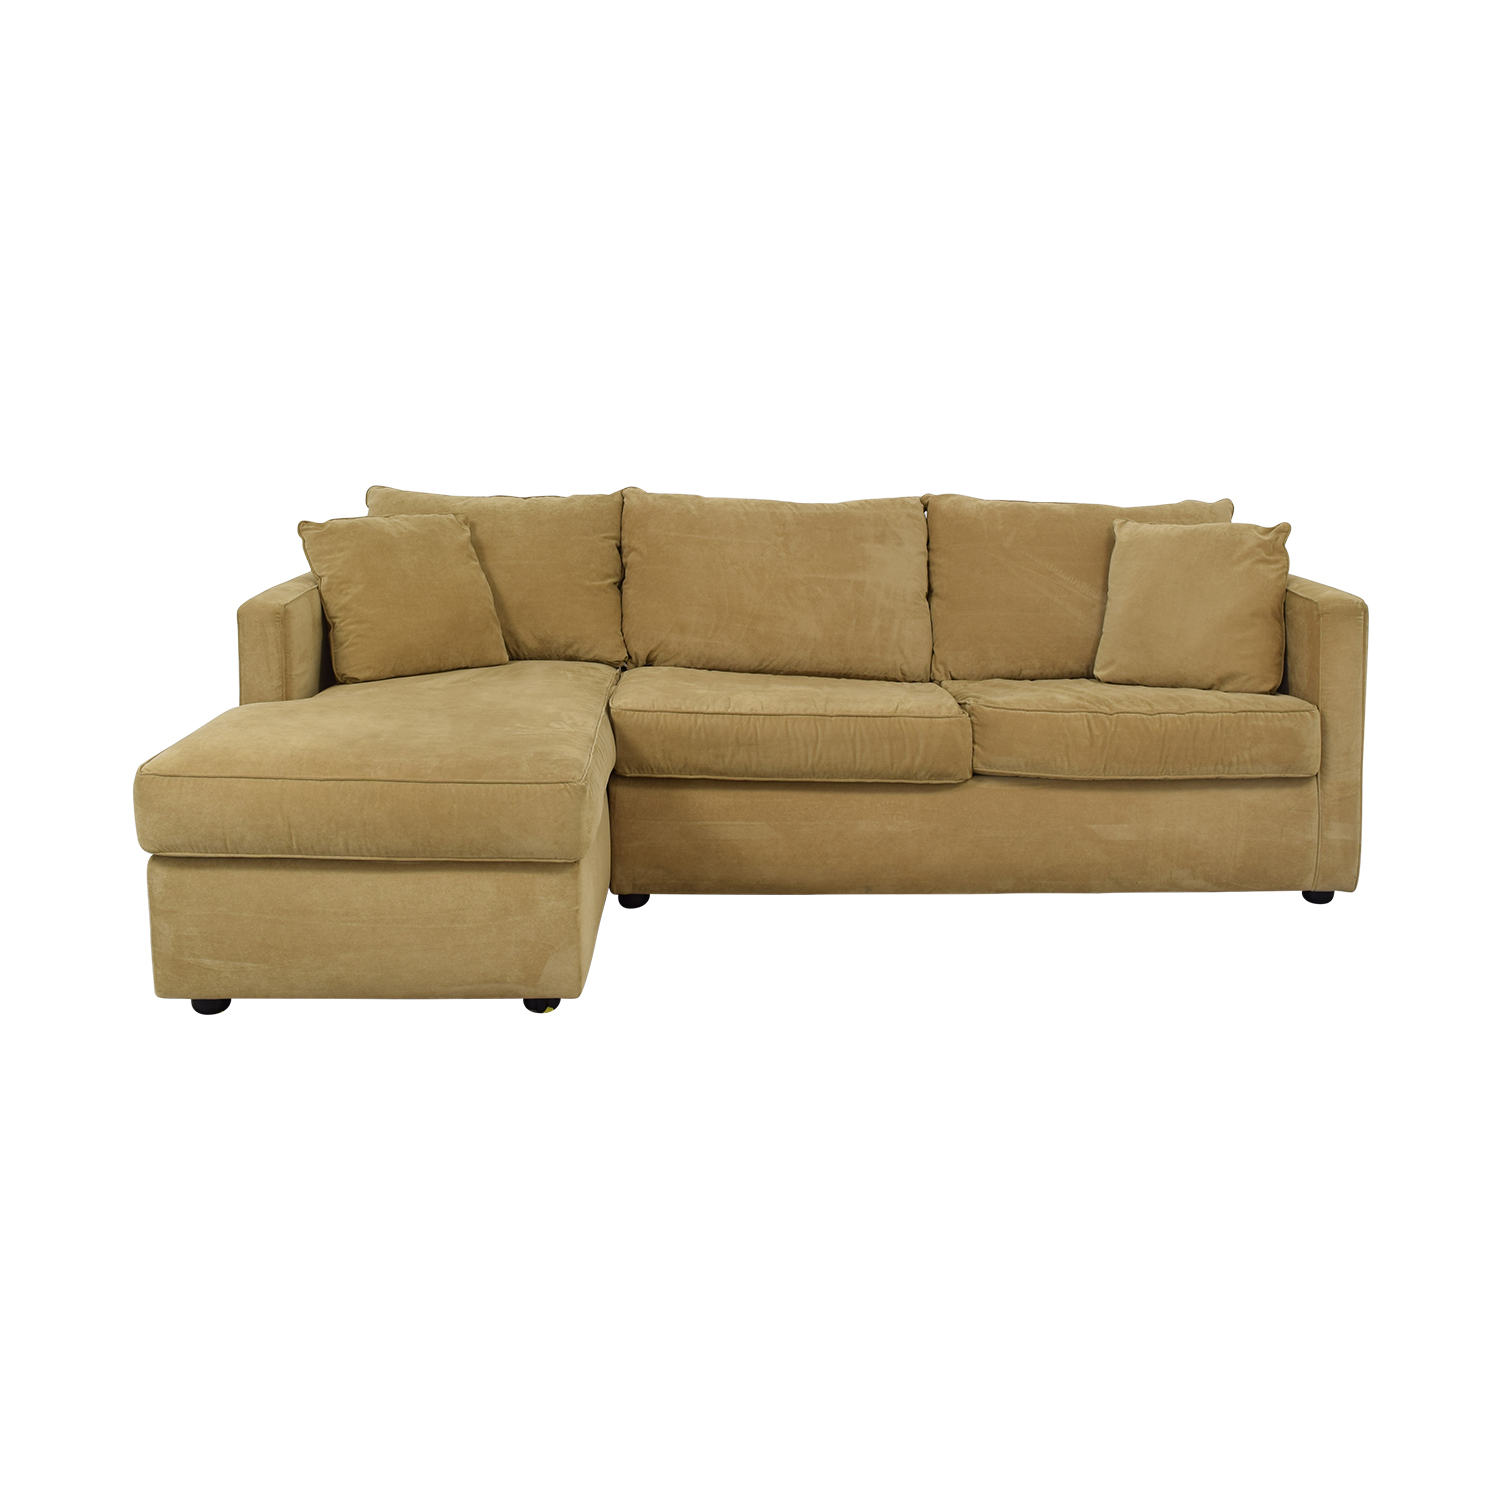 shop Klaussner Chaise Sectional Sleeper Sofa Klaussner Sofas